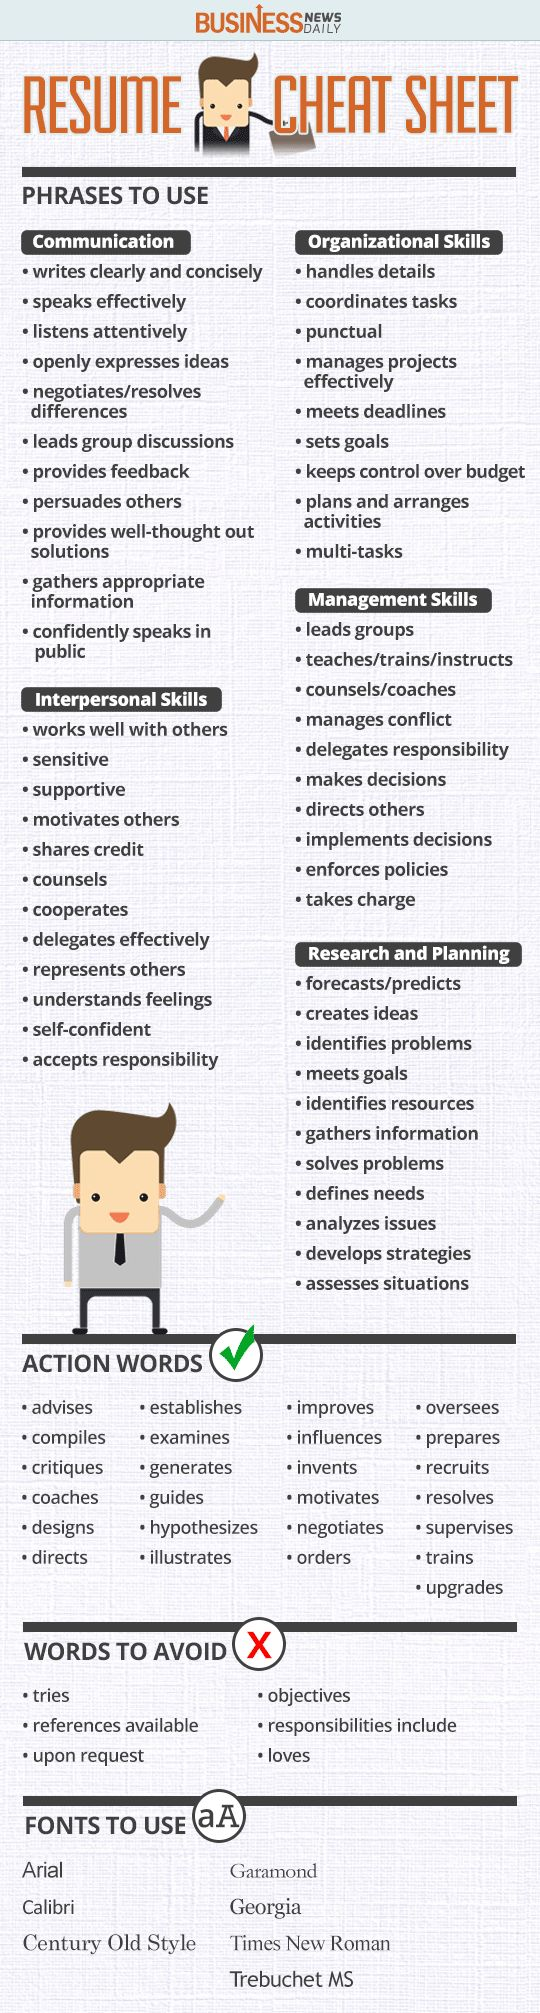 Opposenewapstandardsus  Picturesque  Ideas About Resume On Pinterest  Cv Format Resume Cv And  With Inspiring Resume Cheat Sheet Infographic Andrews Almost Done With A Complete Unit On Employment Which With Beautiful Objective For Resumes Also Mental Health Counselor Resume In Addition Resume Free Online And Career Change Resume Samples As Well As Linkedin Resume Generator Additionally Resumes For Nurses From Pinterestcom With Opposenewapstandardsus  Inspiring  Ideas About Resume On Pinterest  Cv Format Resume Cv And  With Beautiful Resume Cheat Sheet Infographic Andrews Almost Done With A Complete Unit On Employment Which And Picturesque Objective For Resumes Also Mental Health Counselor Resume In Addition Resume Free Online From Pinterestcom